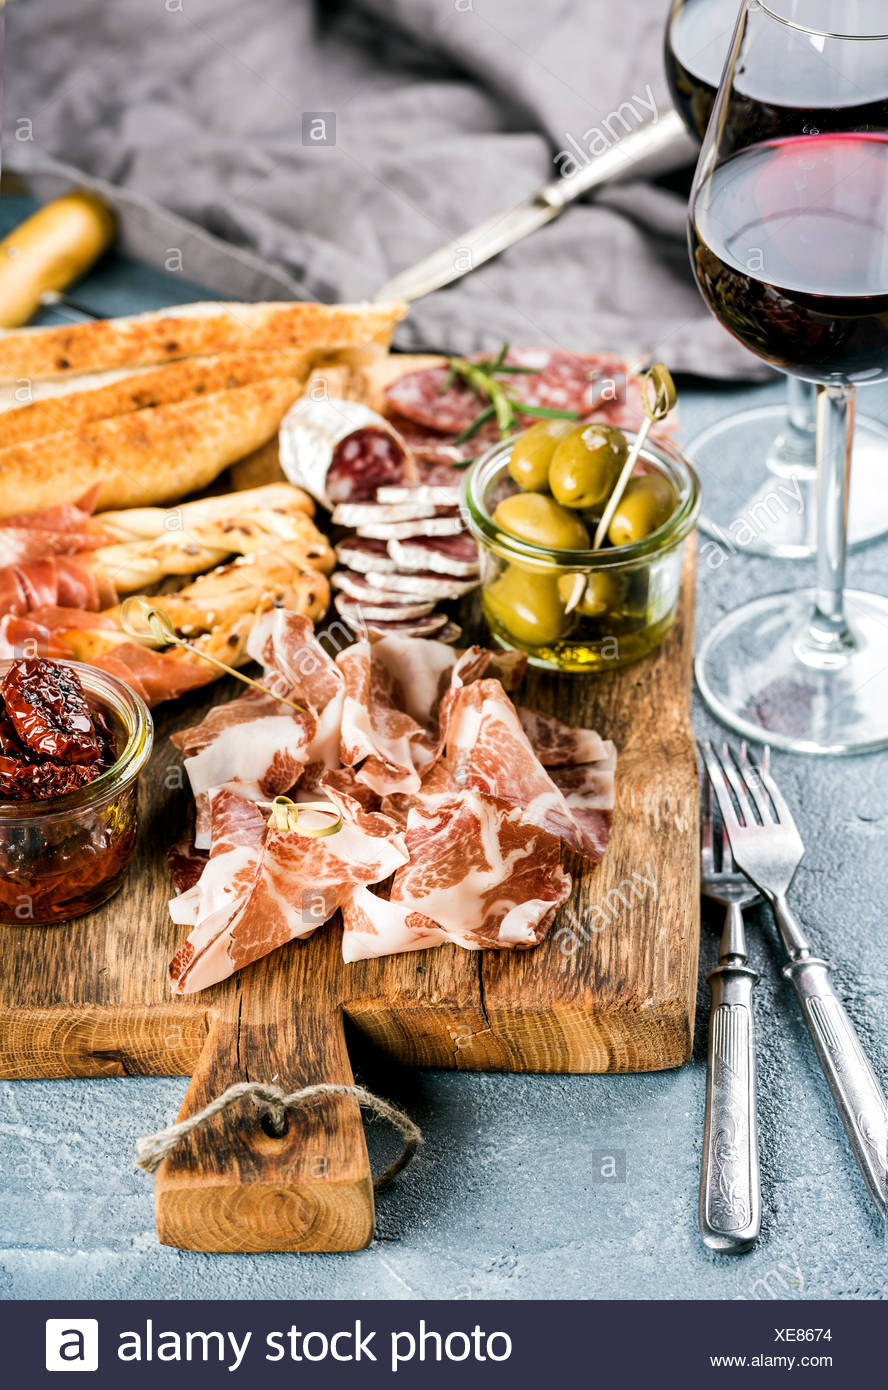 Meat appetizer selection. Salami, prosciutto, bread sticks, baguette, olives and sun-dried tomatoes, two glasses of red wine ove - Stock Image